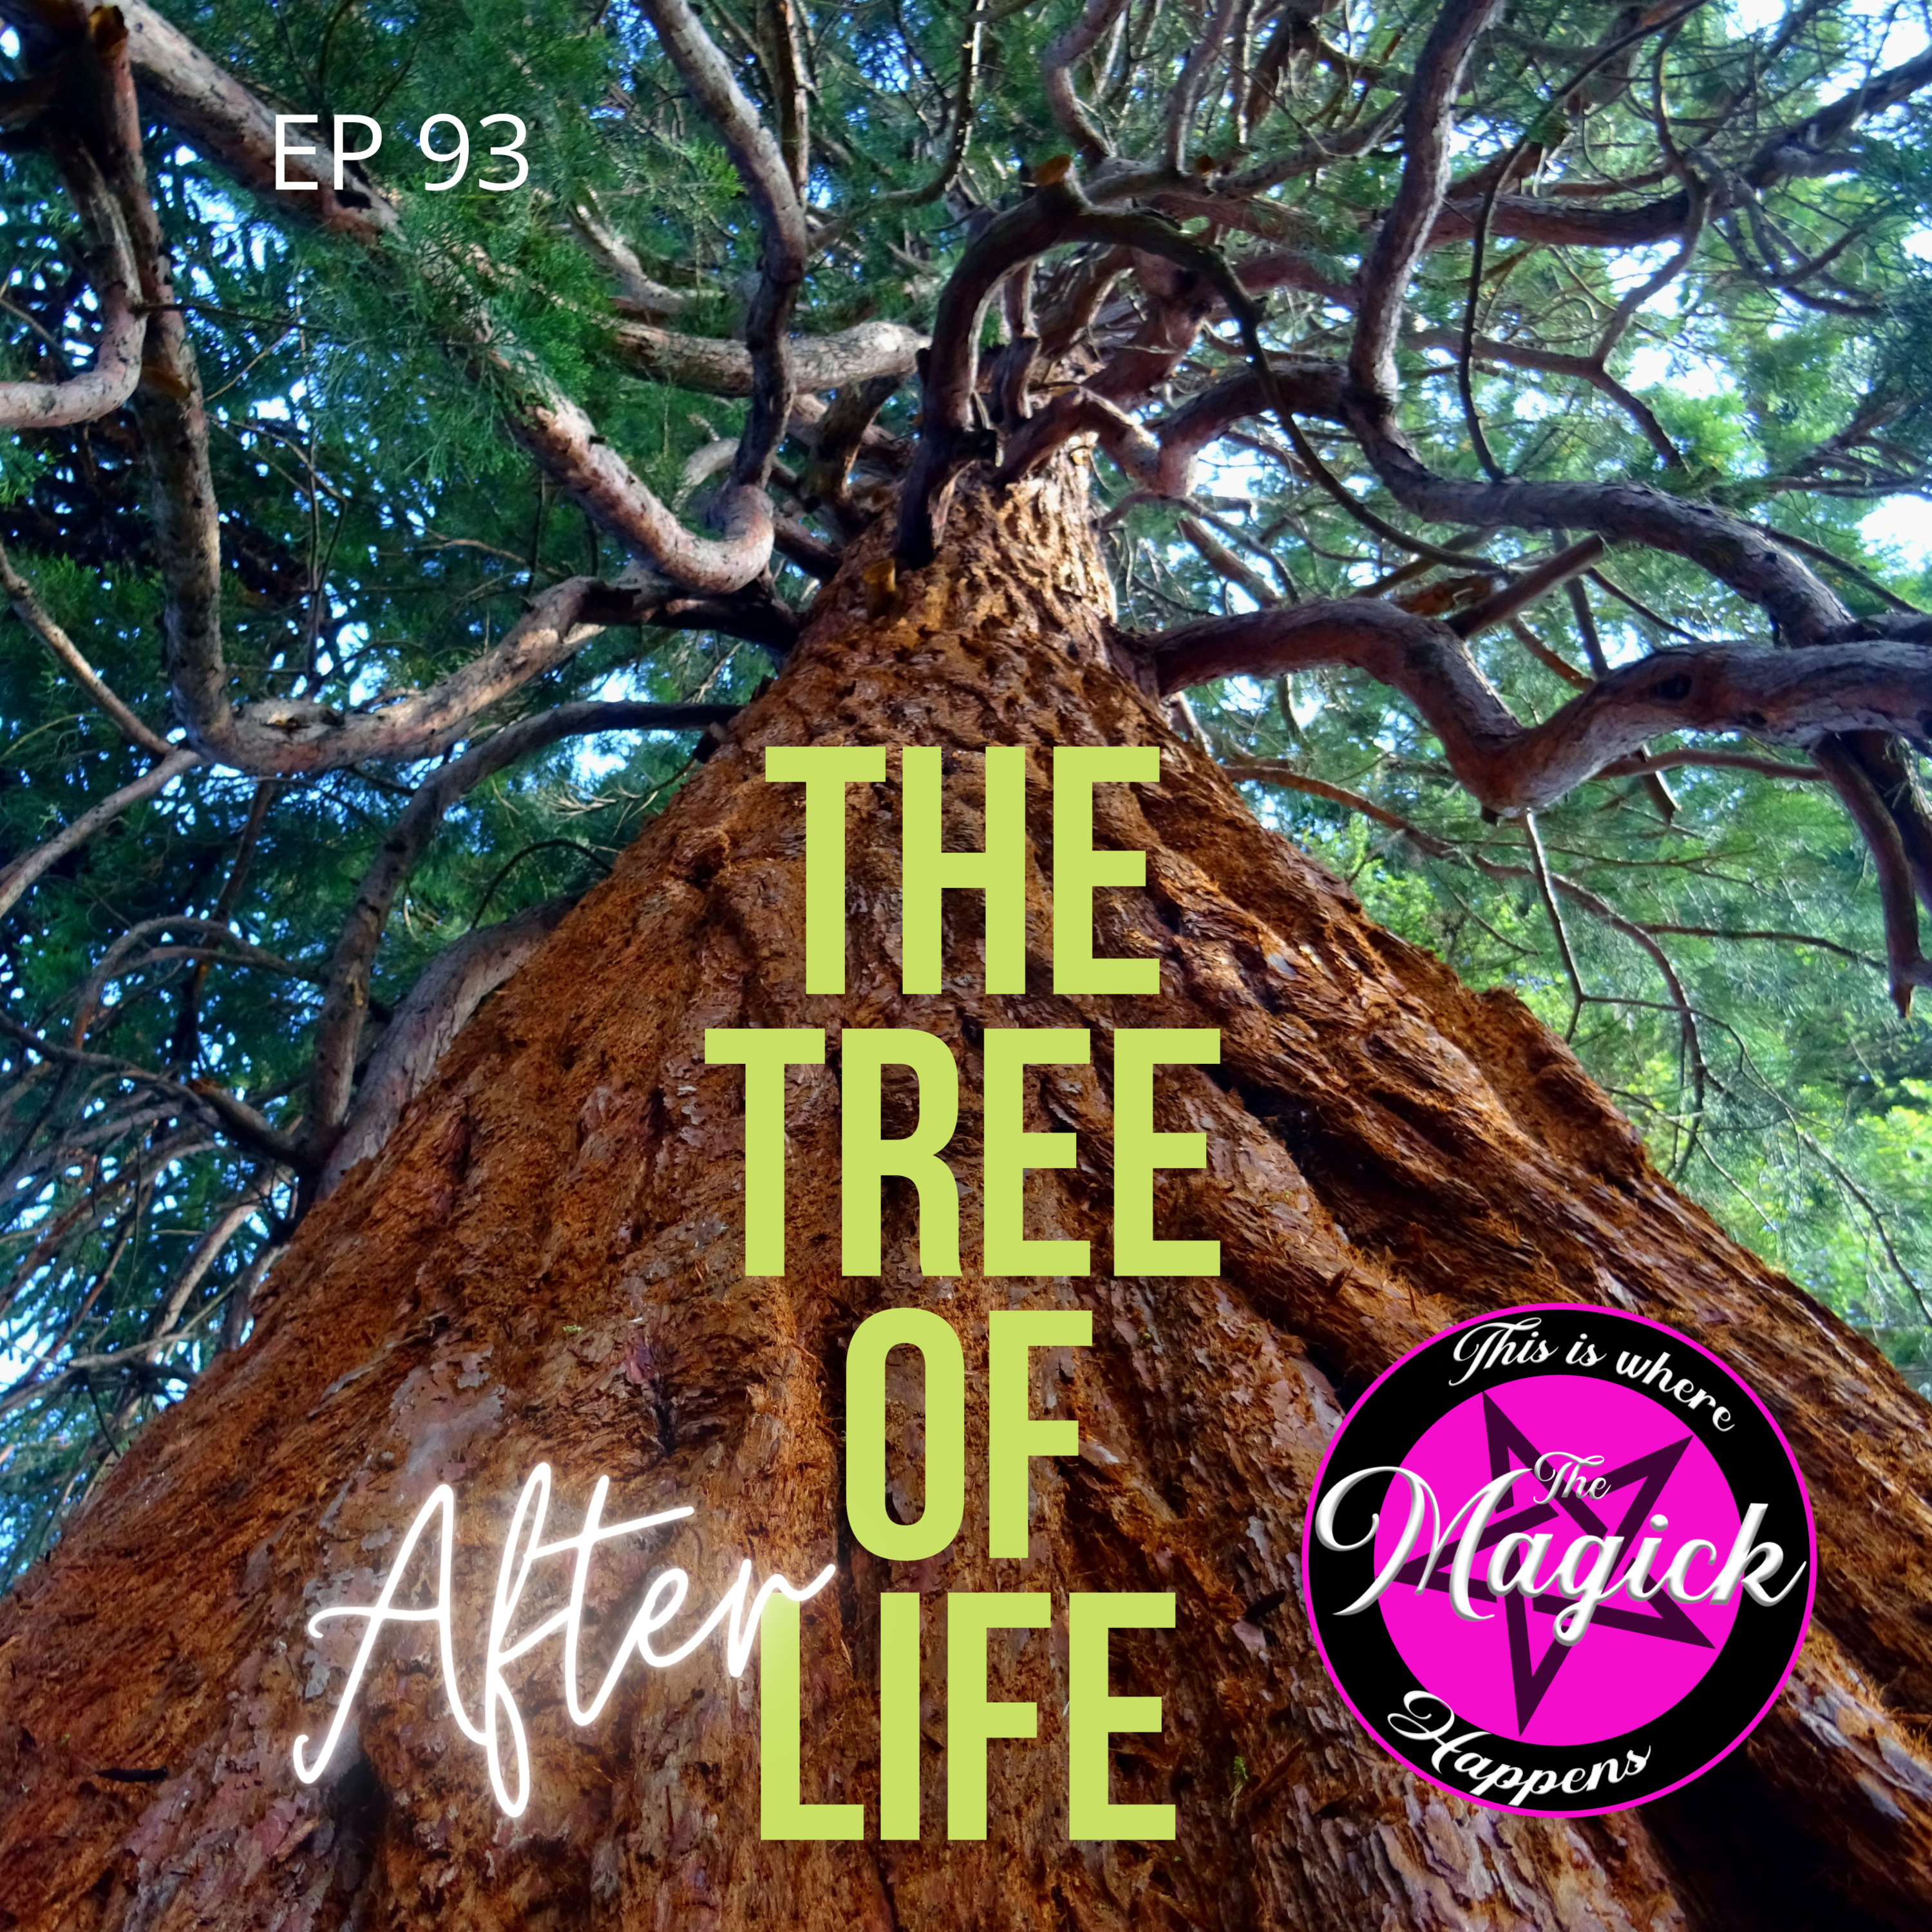 Ep 93 - The Tree of Afterlife